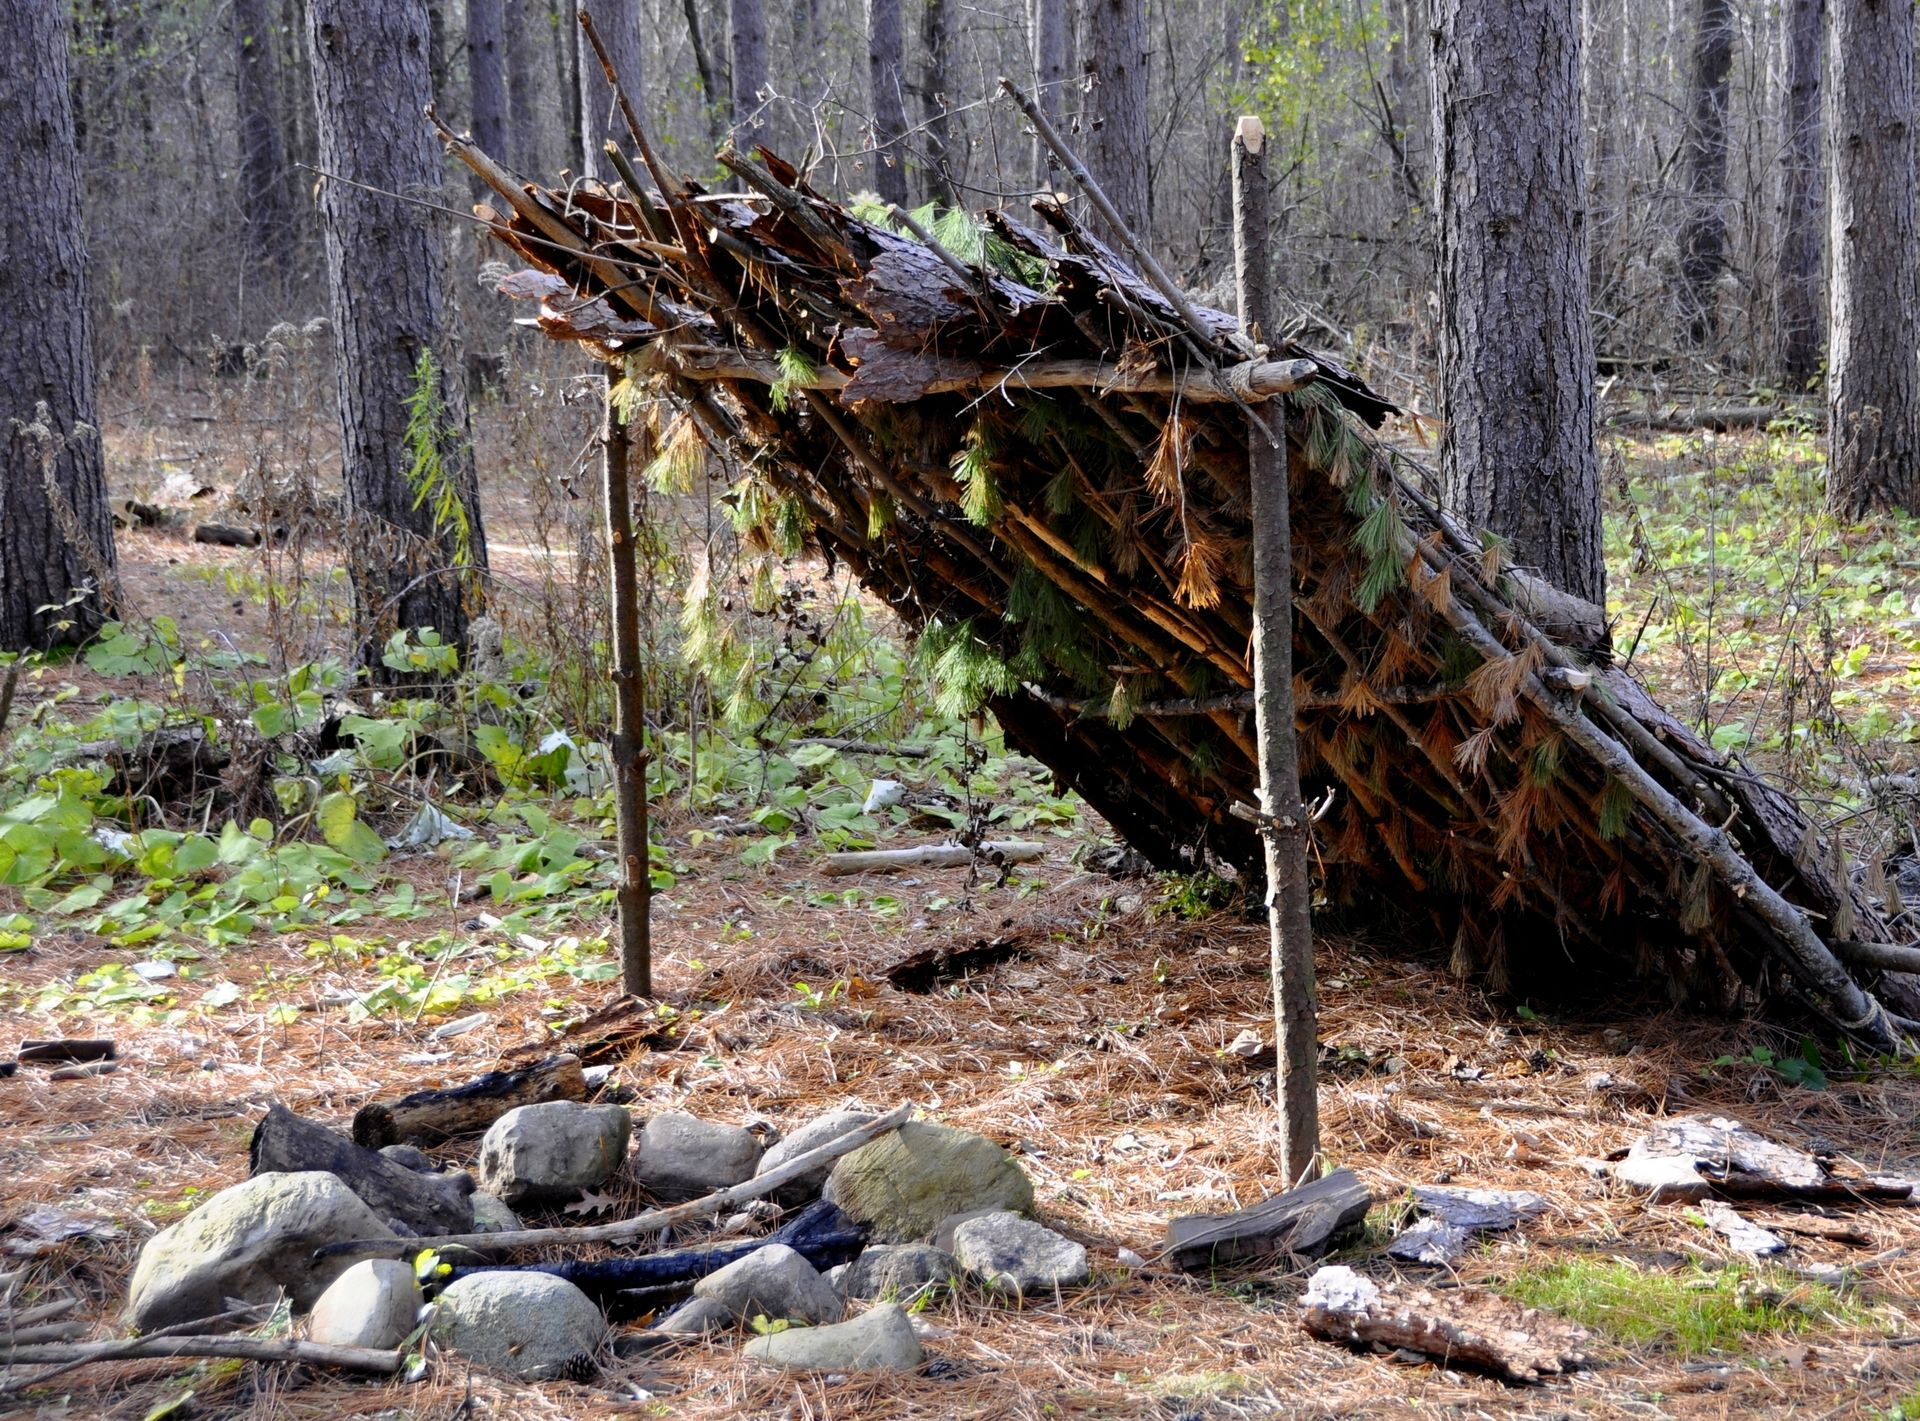 Build your own shelter in the wild